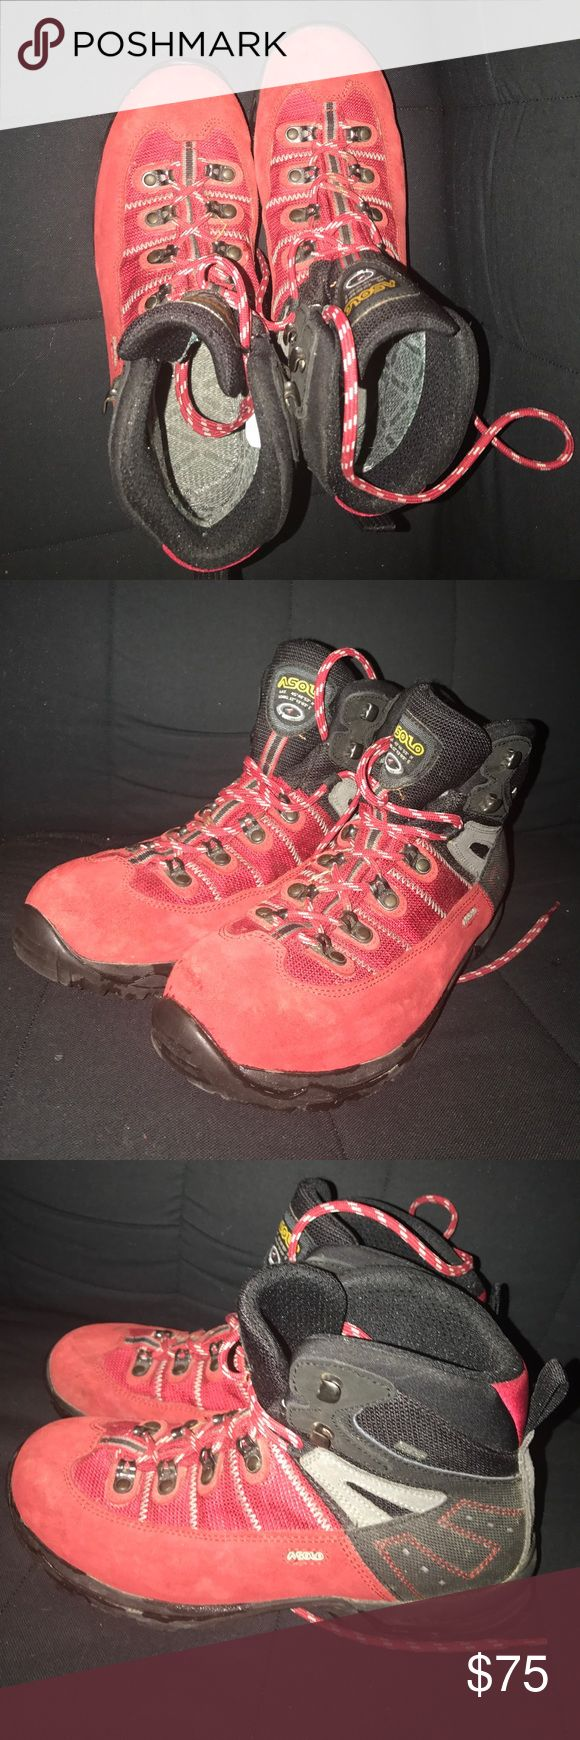 Asolo hiking-winter-snow boots red Suede sz 6 2/3 40 European size. 6 2/3 American men size. Worn lightly so no wear & tear   Red Suede with wool lining. Warm and good slip proof for snow. Asolo Shoes Boots